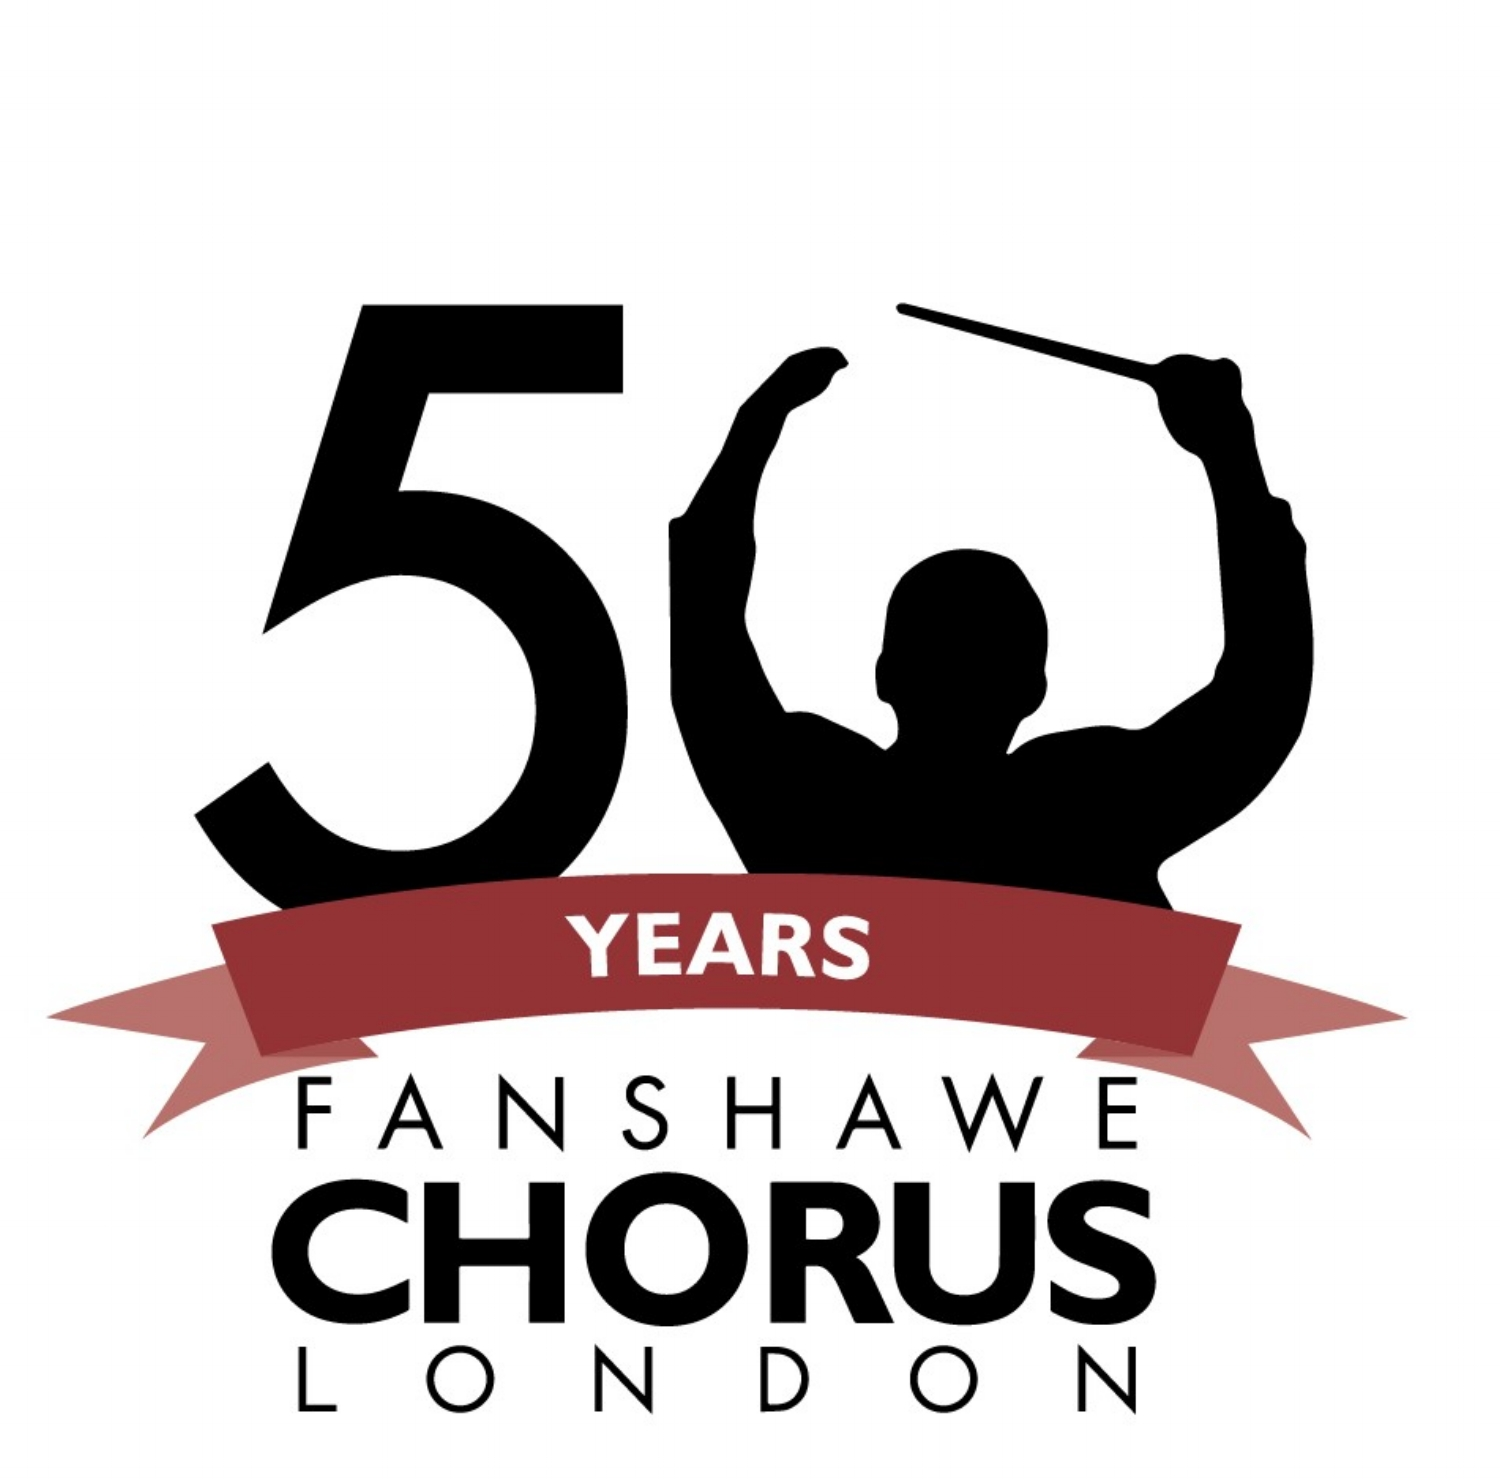 Fanshawe Chorus London